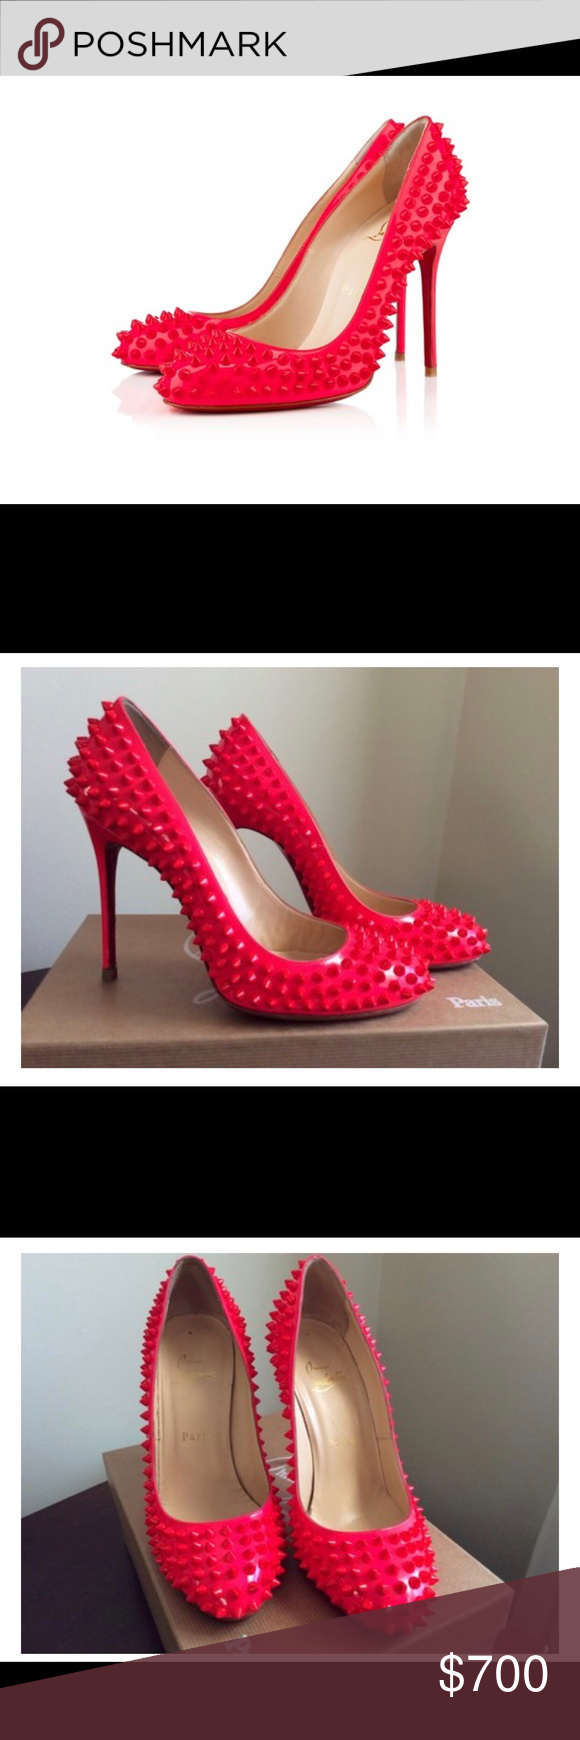 7b45998ef0d Christian Louboutin Fifi Spike Pumps Hot pink. Worn 3 times ...